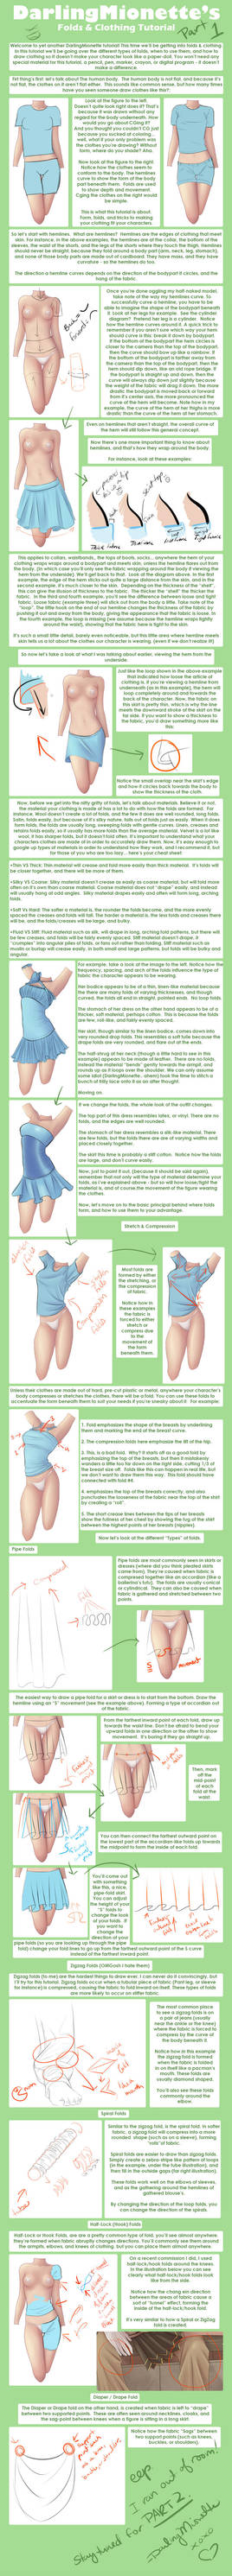 Tutorial - Clothing + Folds 1 by DarlingMionette